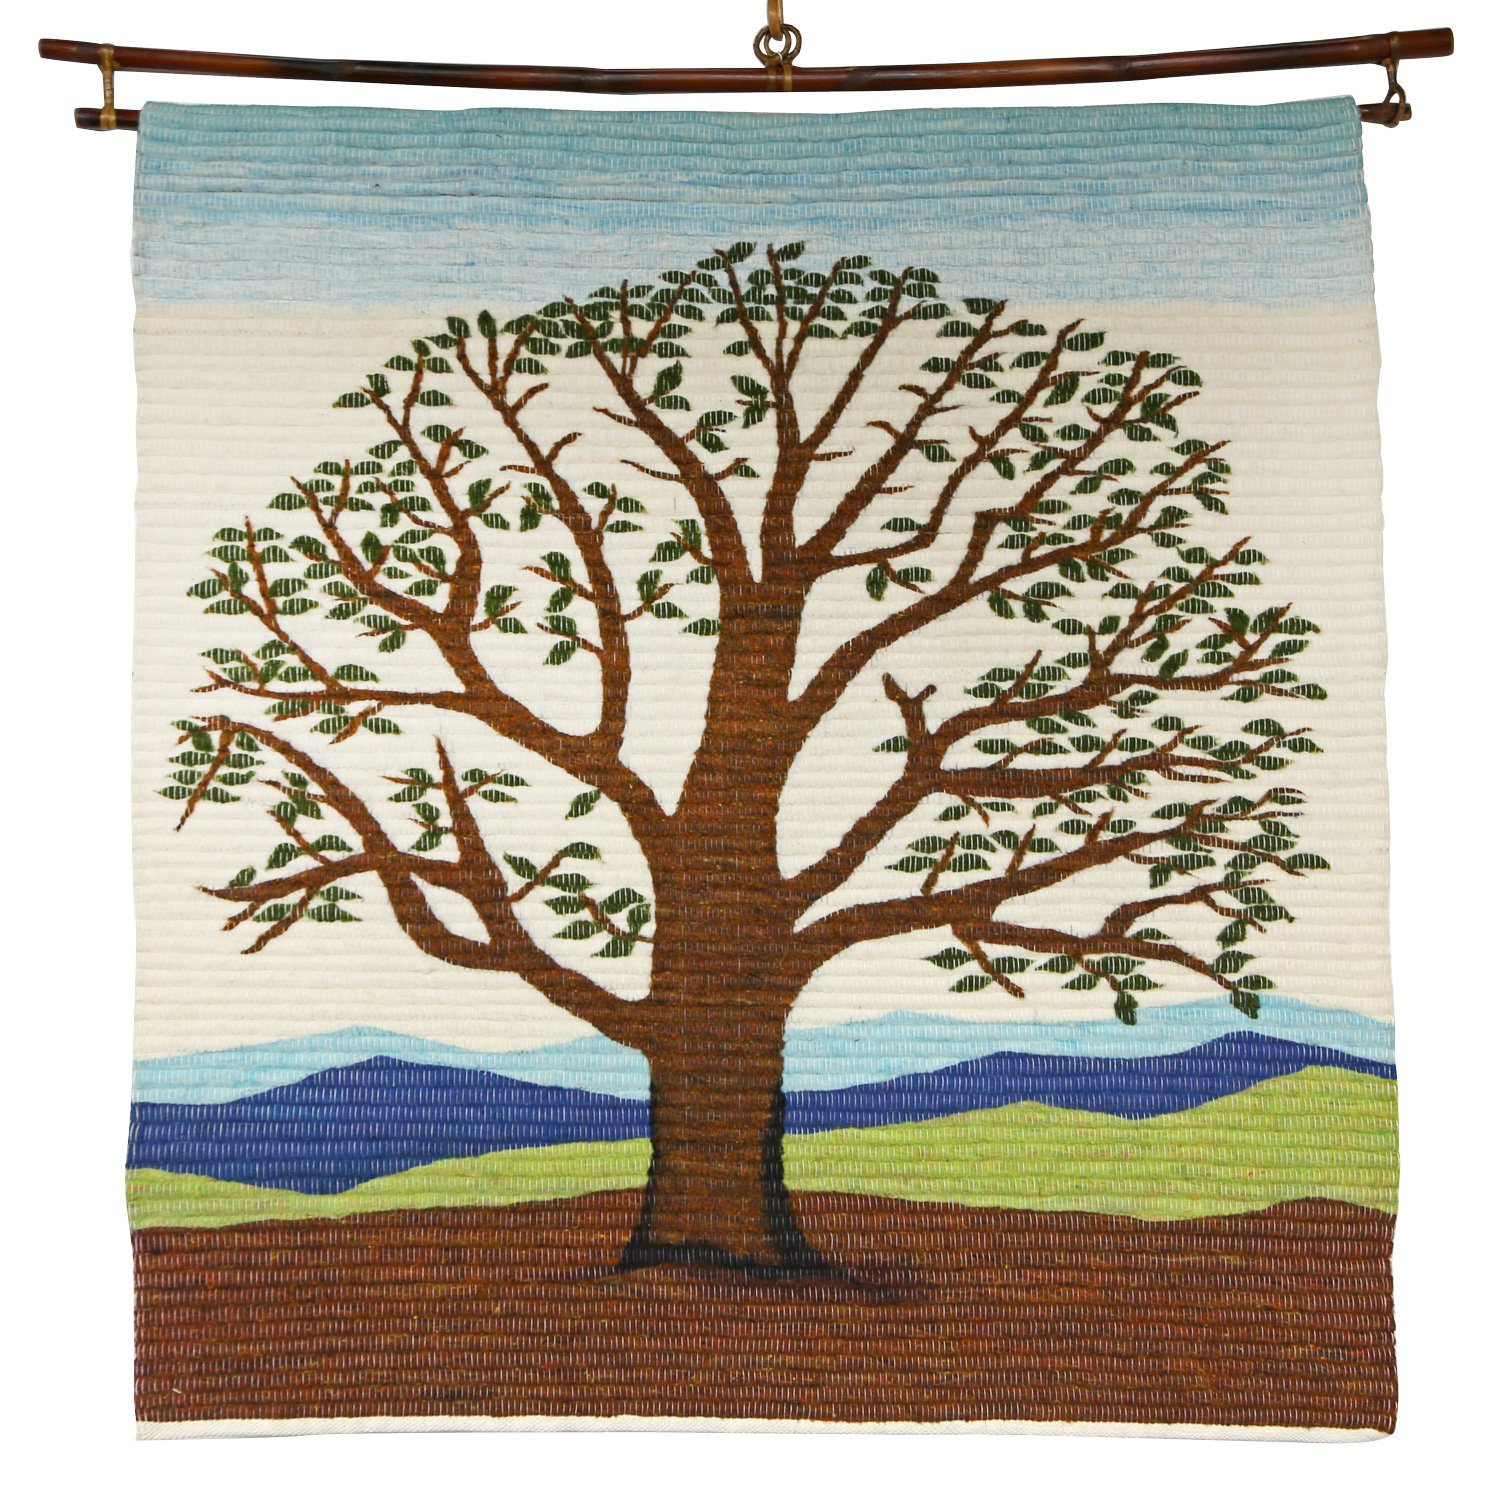 Wool Blend Wall Hanging 36''x33'' 'Branching Life Wall Hanging' by Ten Thousand Villages